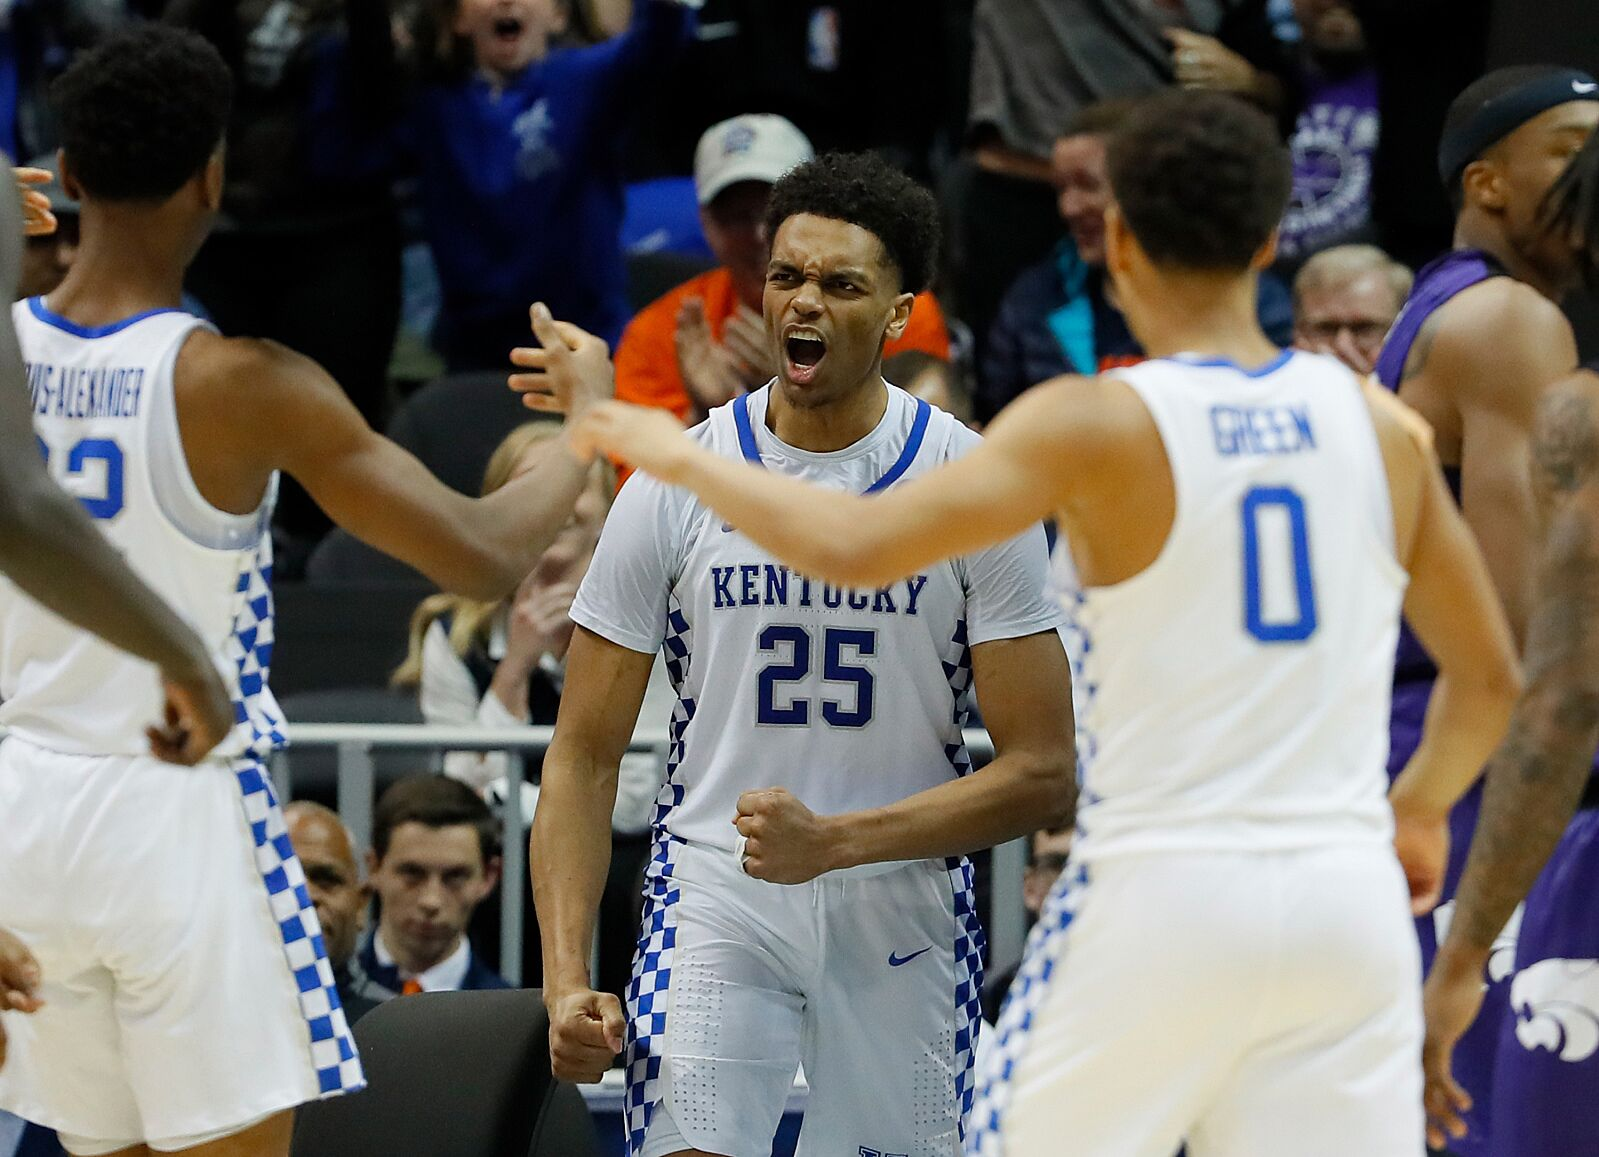 huge discount 39f99 8379e ... Washington  25 of the Kentucky Wildcats celebrates his basket against  the Kansas State Wildcats in the second half during the 2018 NCAA Men s  Basketball ...